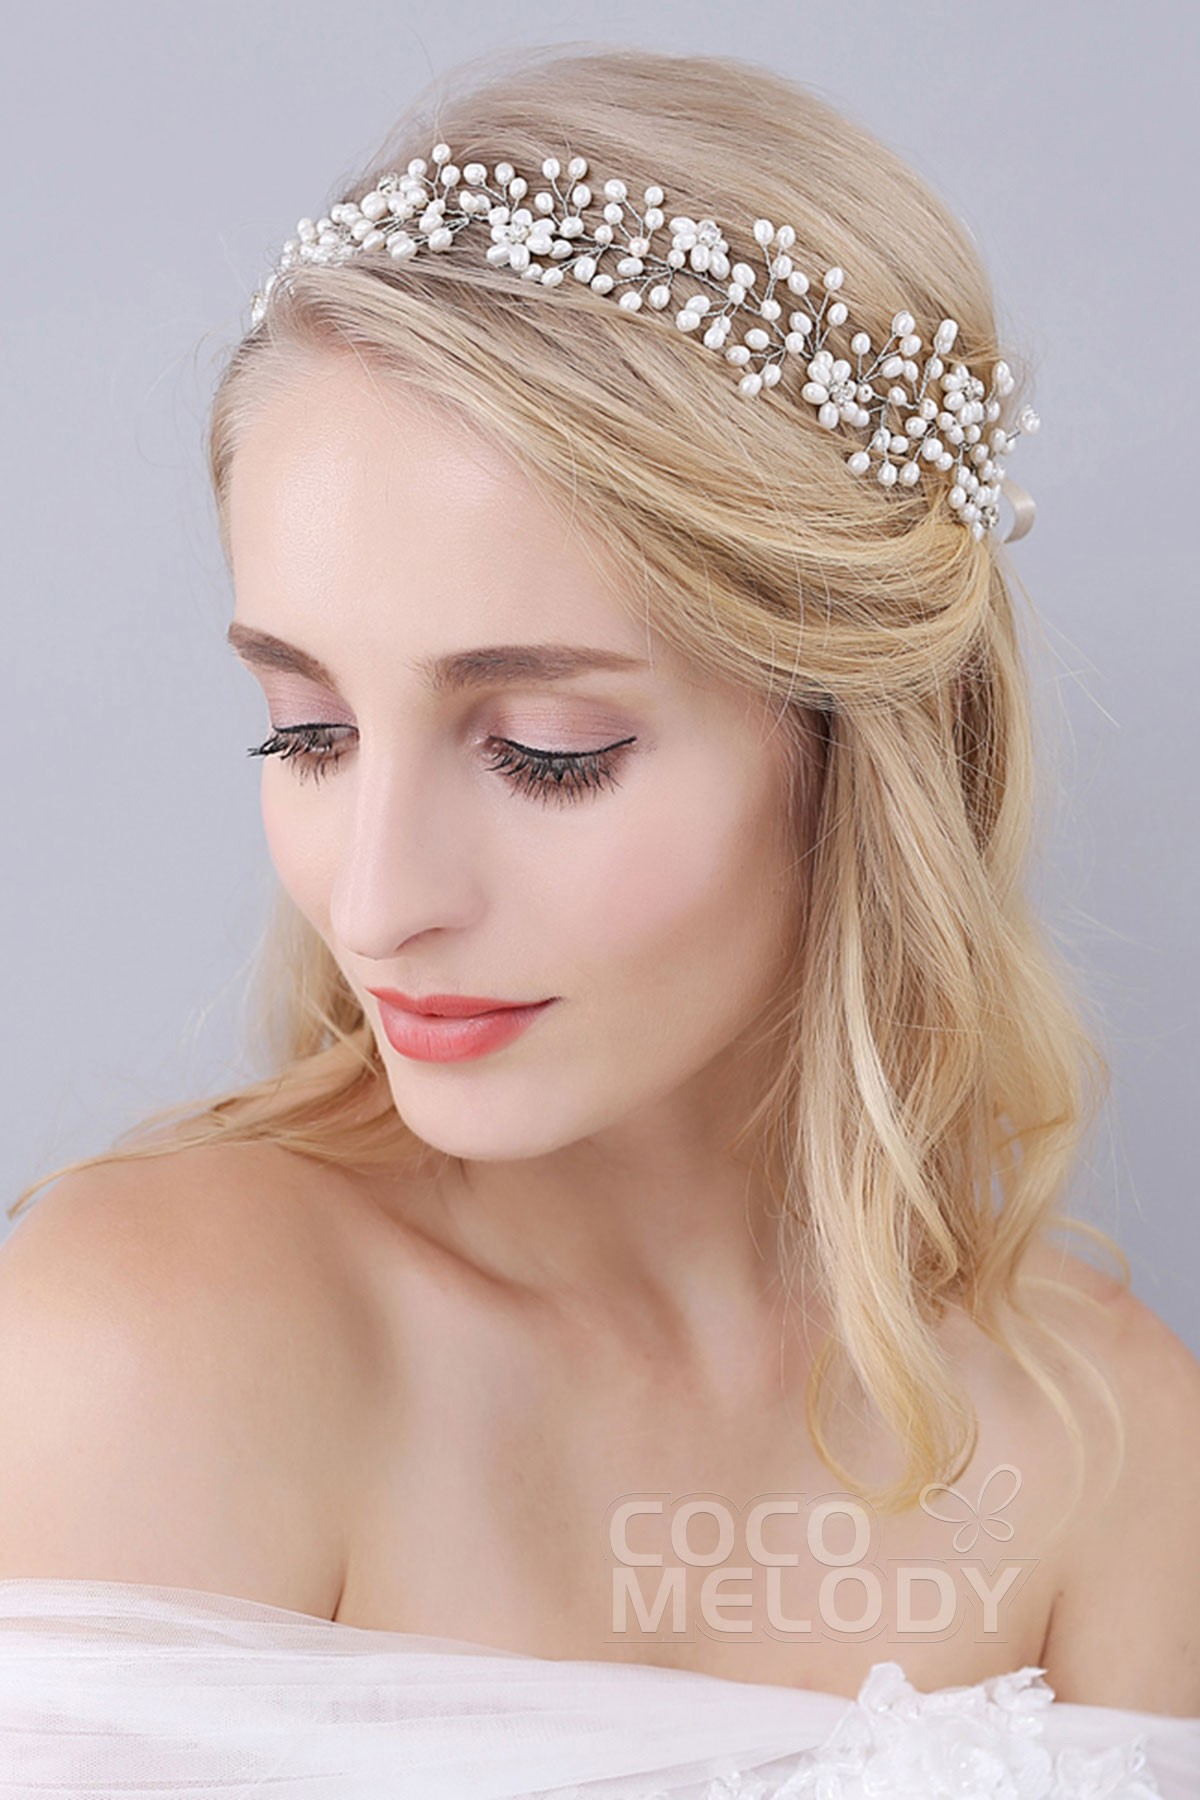 cocomelody: silver cloud alloy wedding headbands with rhinestone and